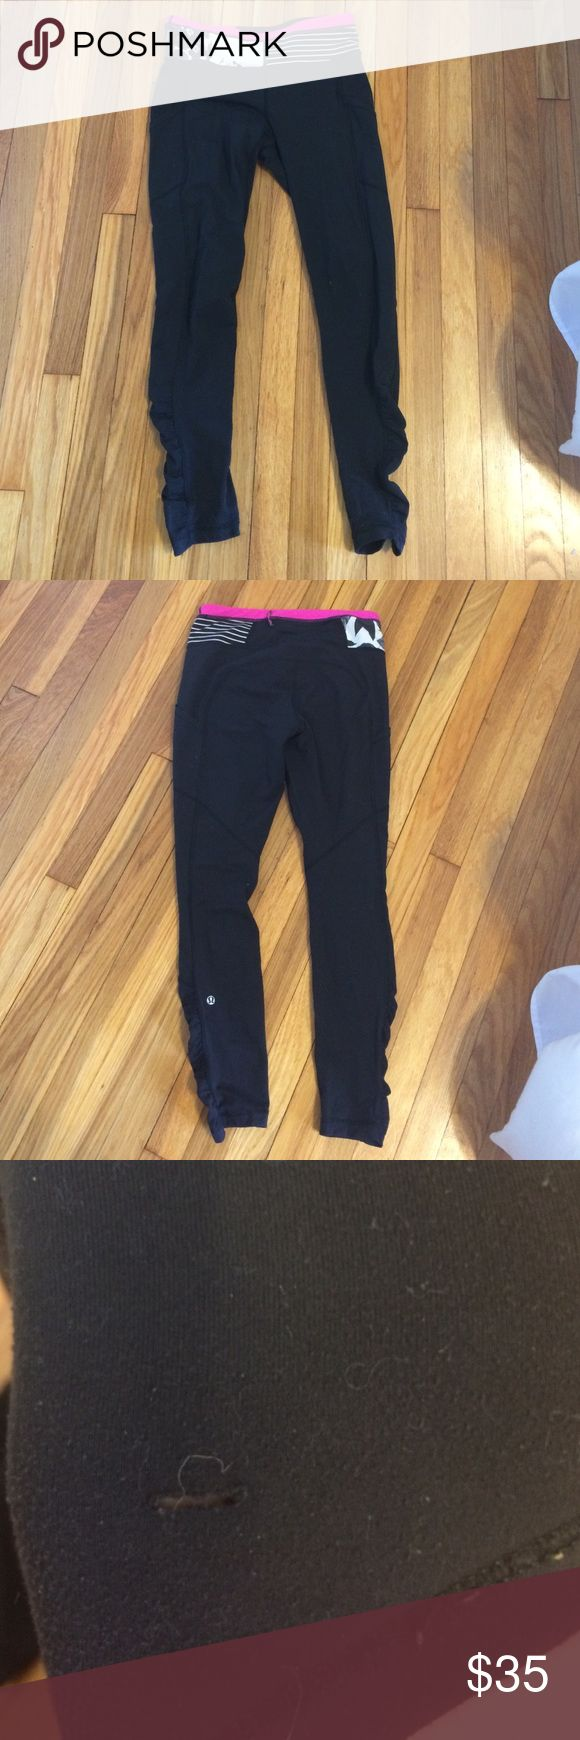 Lululemon speed tights - size 6 These are the older lululemon speed tights. They are longer and hit at the ankle. These are black with a pink, black and white band around the waist. There is definitely PILING on these (that explains the low price). There is also a very small rip on one of the side pockets. It is unnoticeable when worn. The material is the more cotton feel and not the Luon material. lululemon athletica Pants Leggings